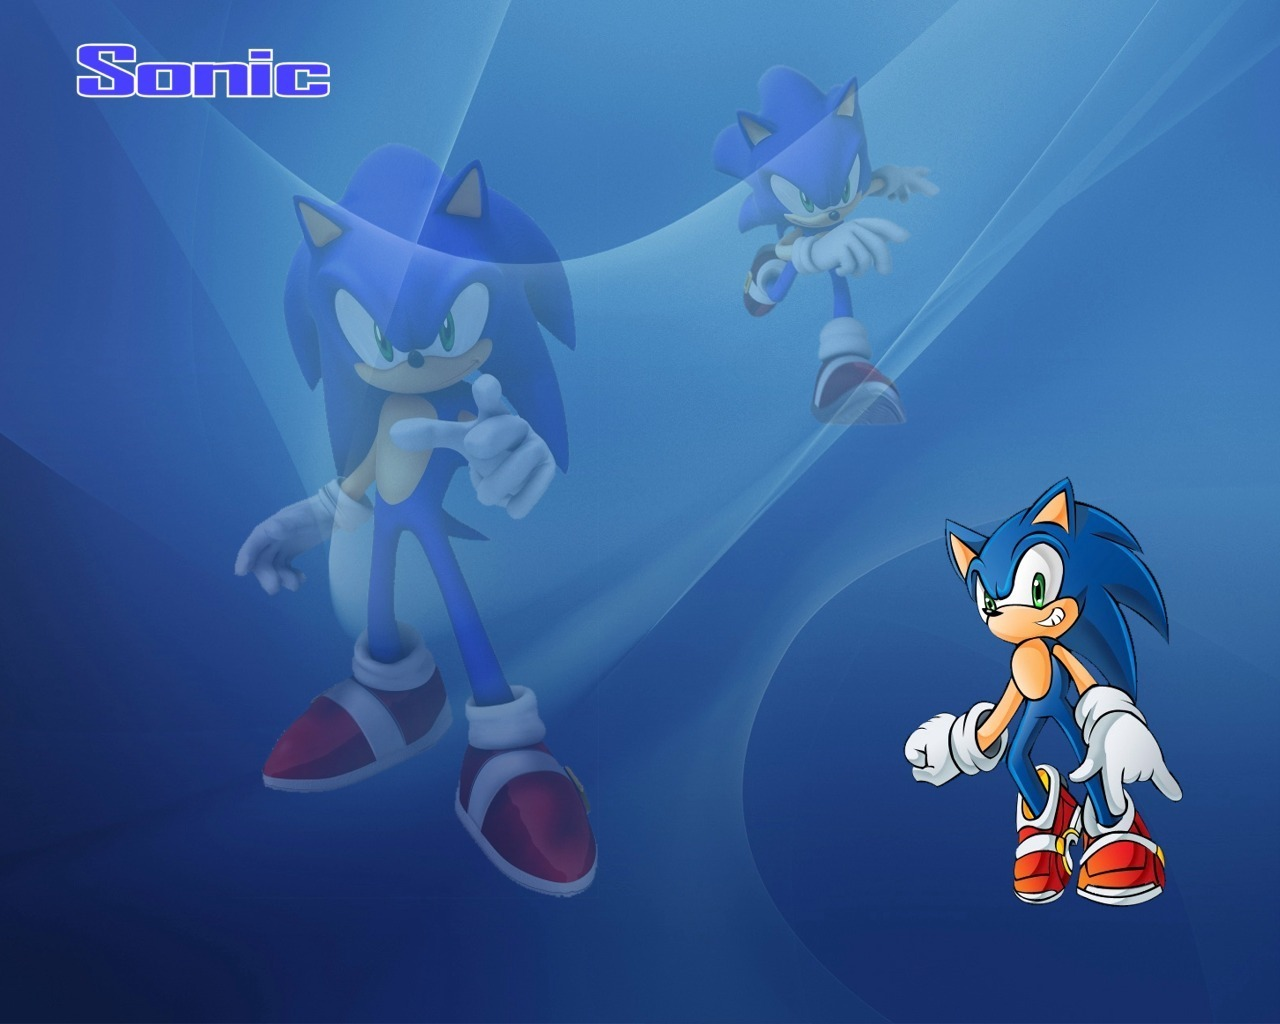 Sonic wallpapers - Sonic the Hedgehog 1280x1024